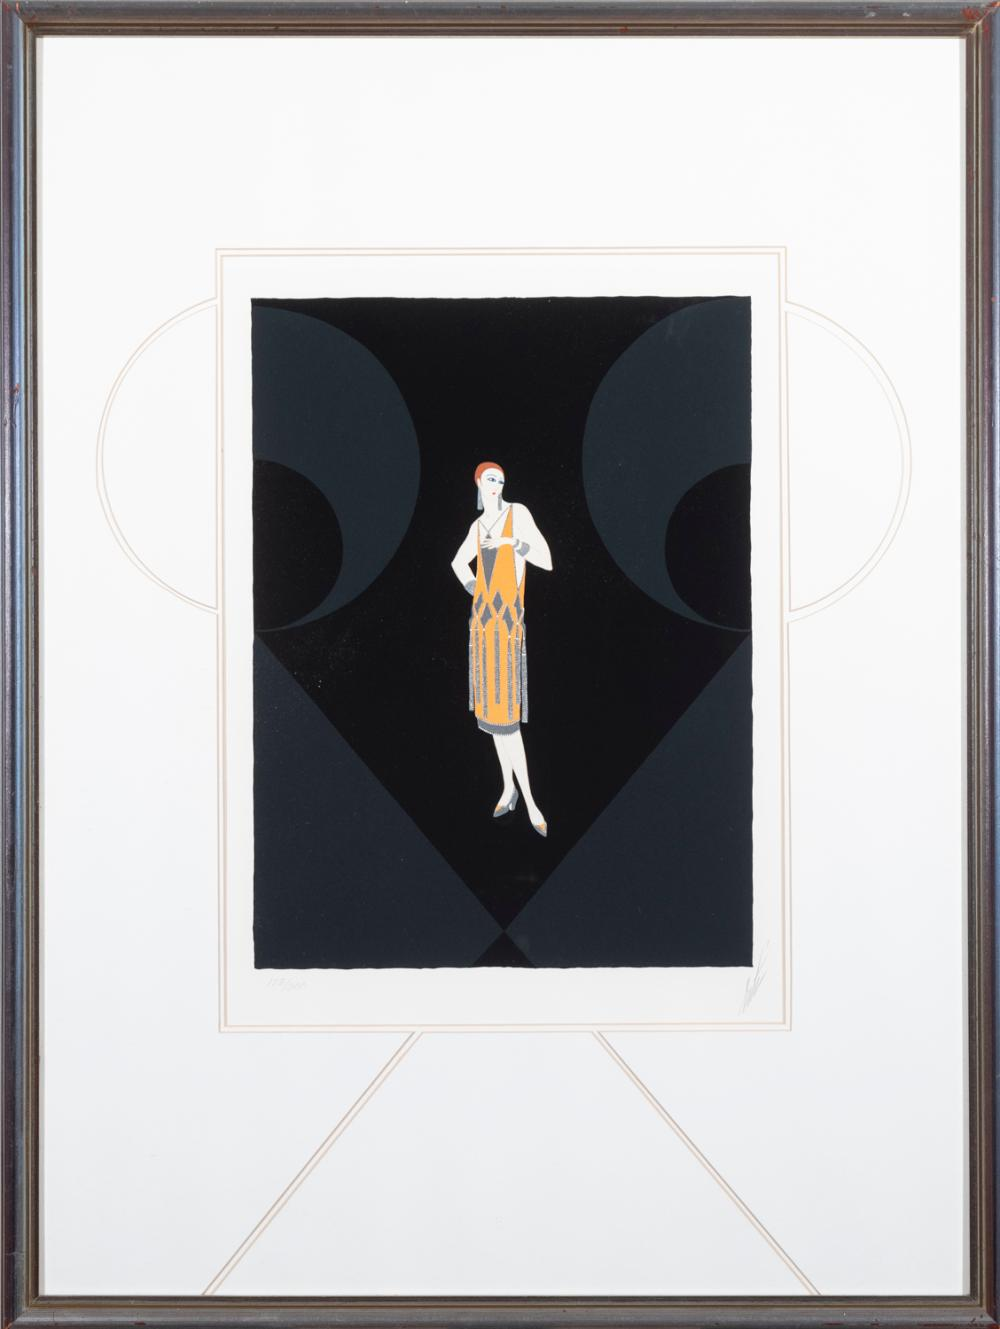 Romain de Tirtoff Erte, Russian/French (1892-1990), Manhattan Mary, serigraph, ed. 128/300, 18 x 13 1/2 inches